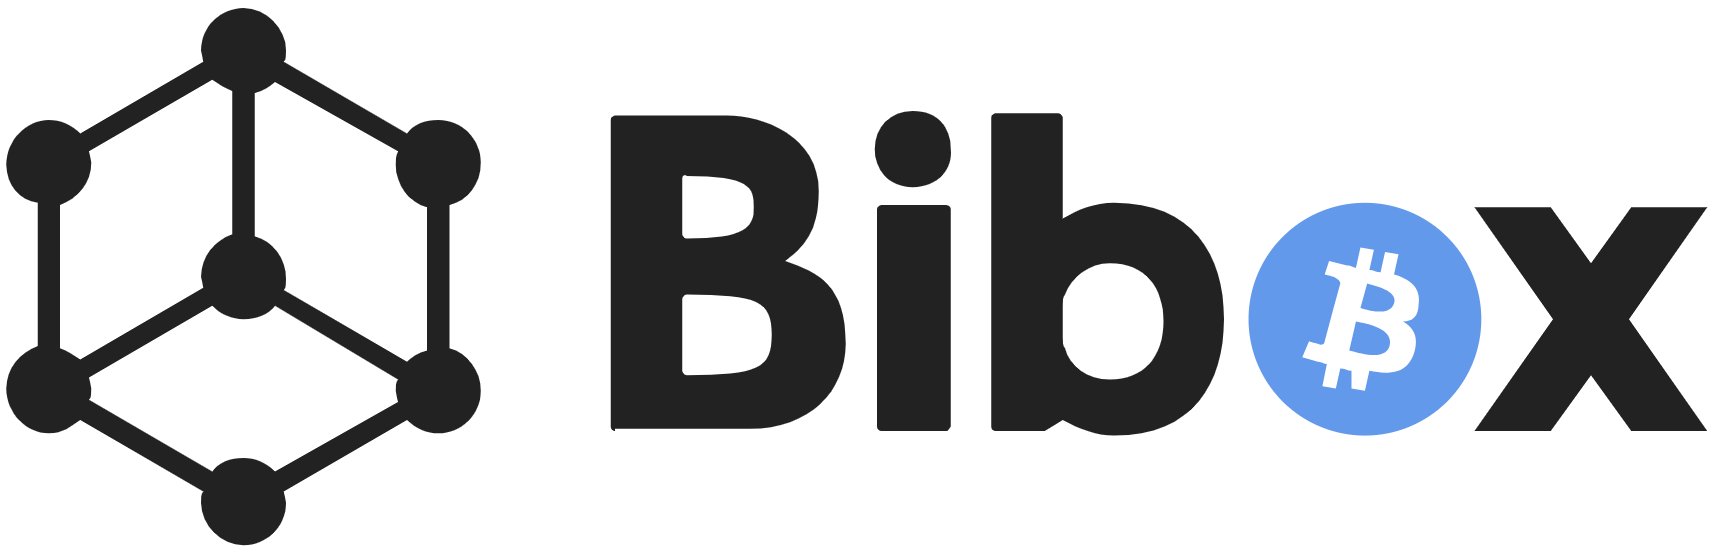 Bibox Token logo